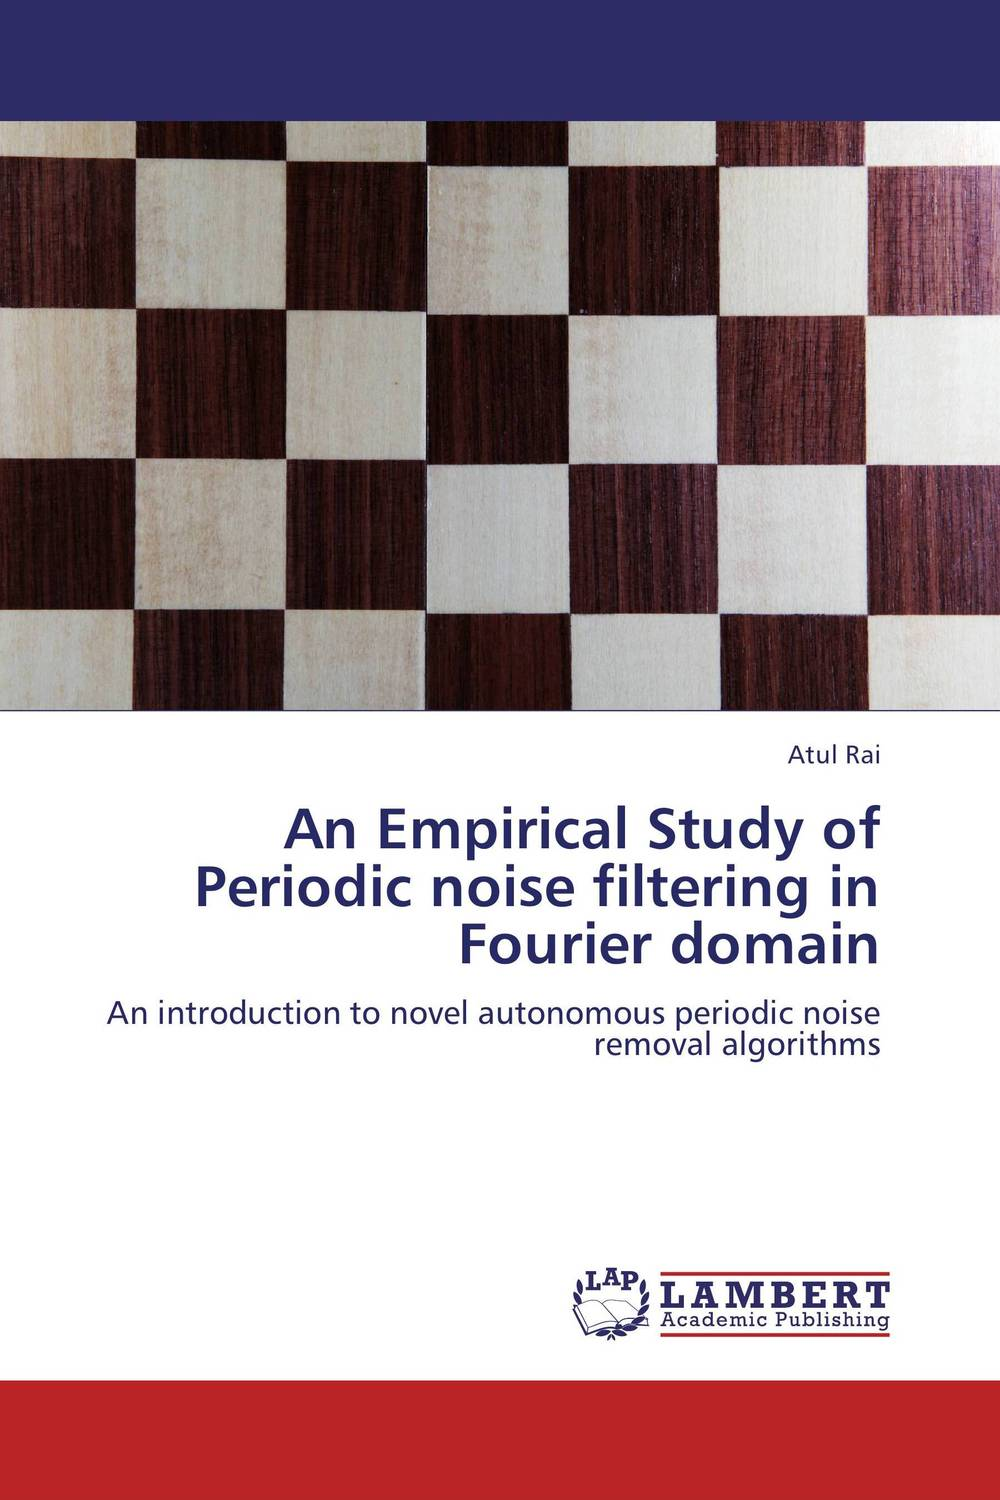 An Empirical Study of Periodic noise filtering in Fourier domain